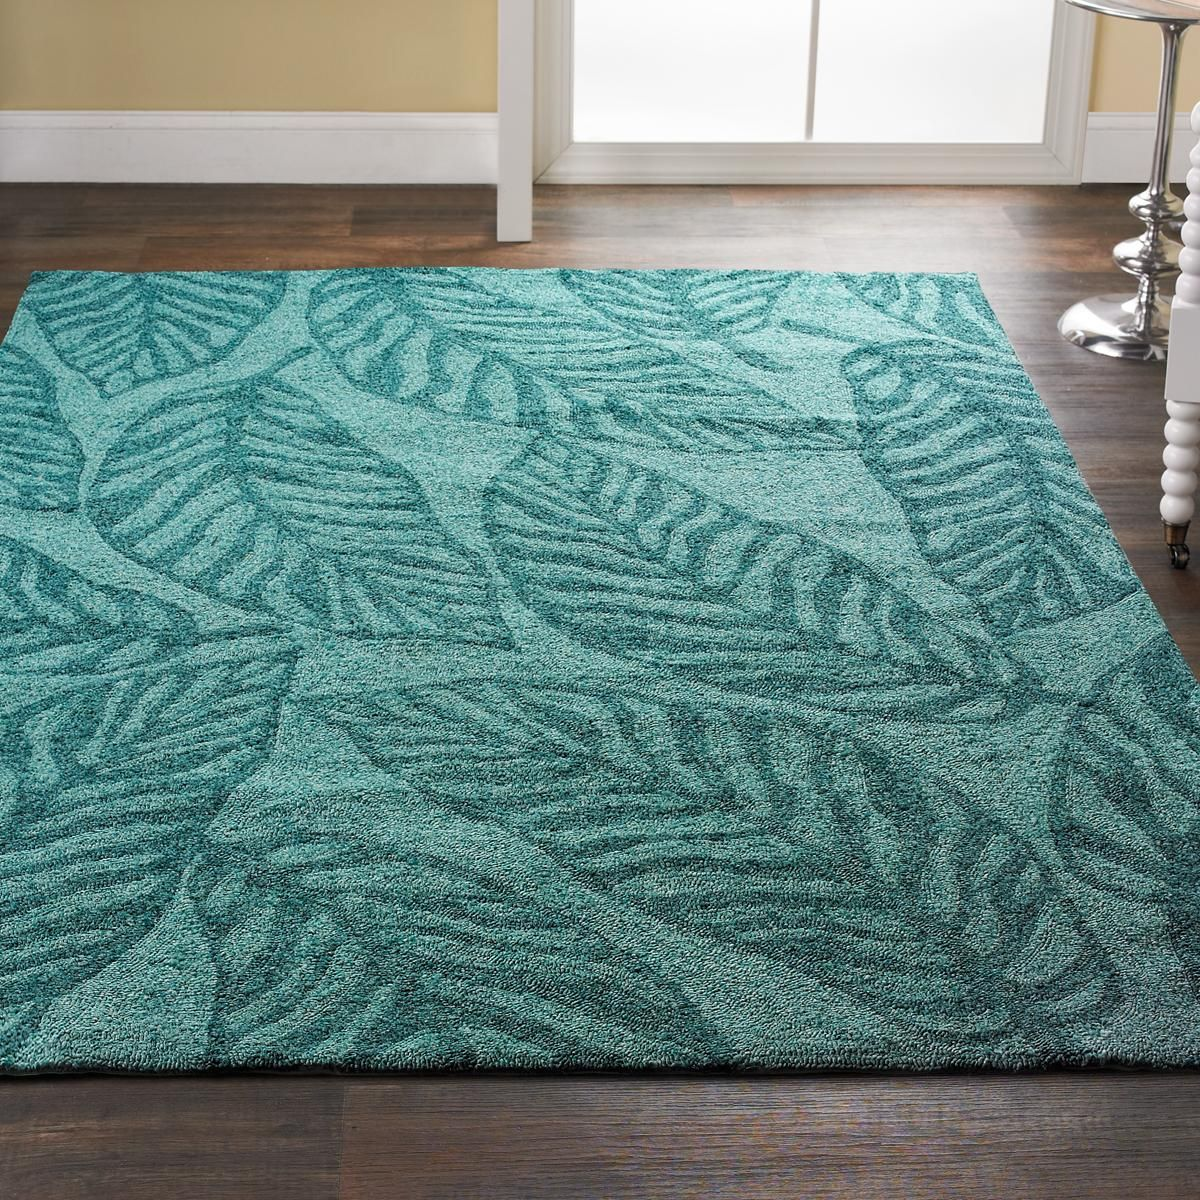 Aqua Leaves Indoor Outdoor Rug Shades Of Light Indoor Outdoor Rugs Outdoor Rugs Tropical Area Rugs